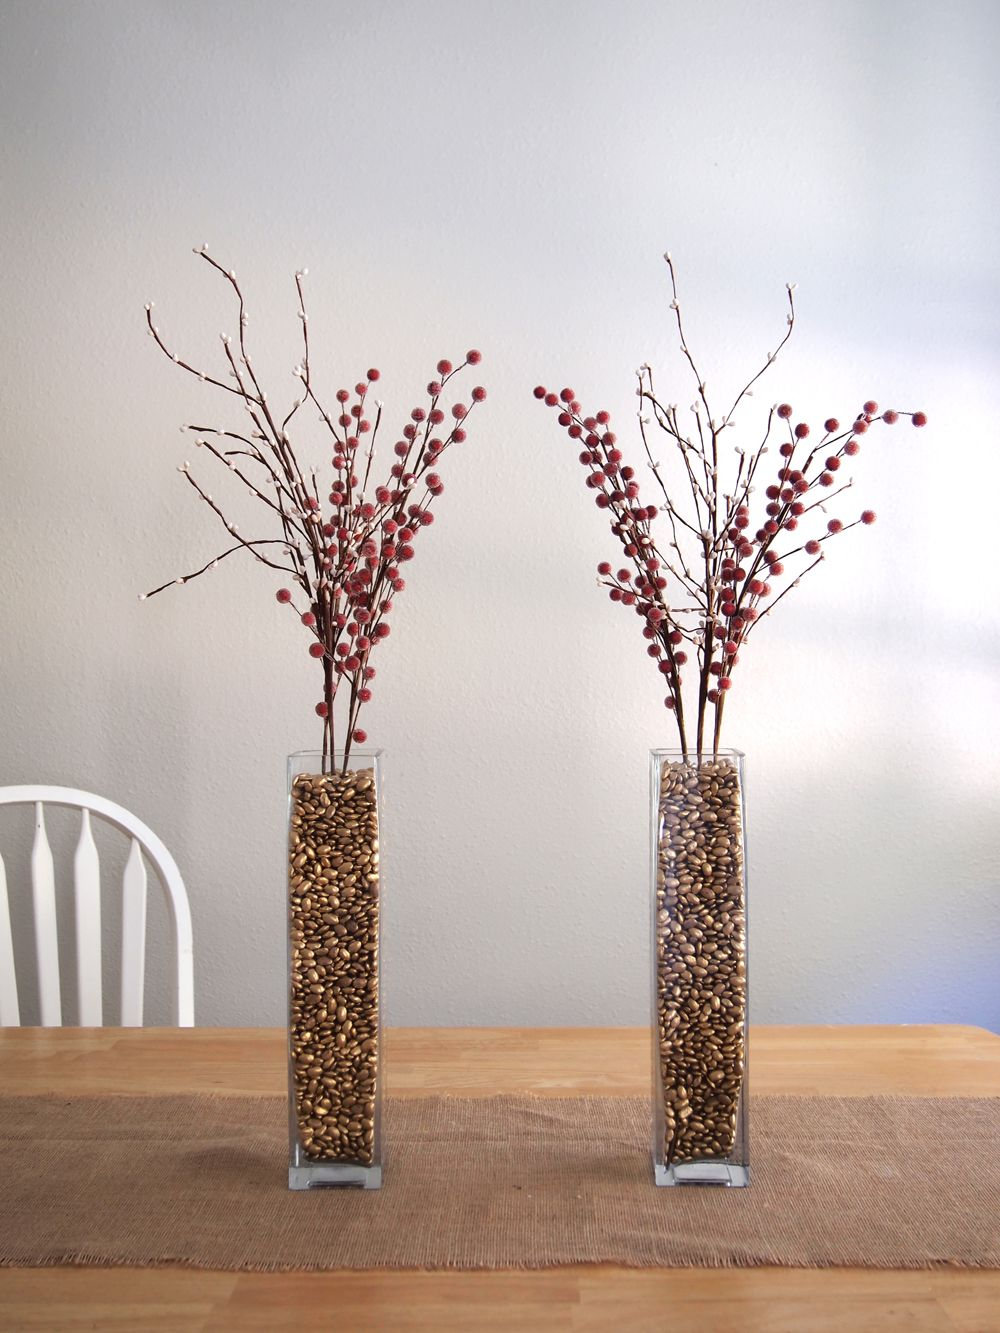 Pinto beans as vase filler who would have thought diy pinto beans as vase filler who would have thought reviewsmspy